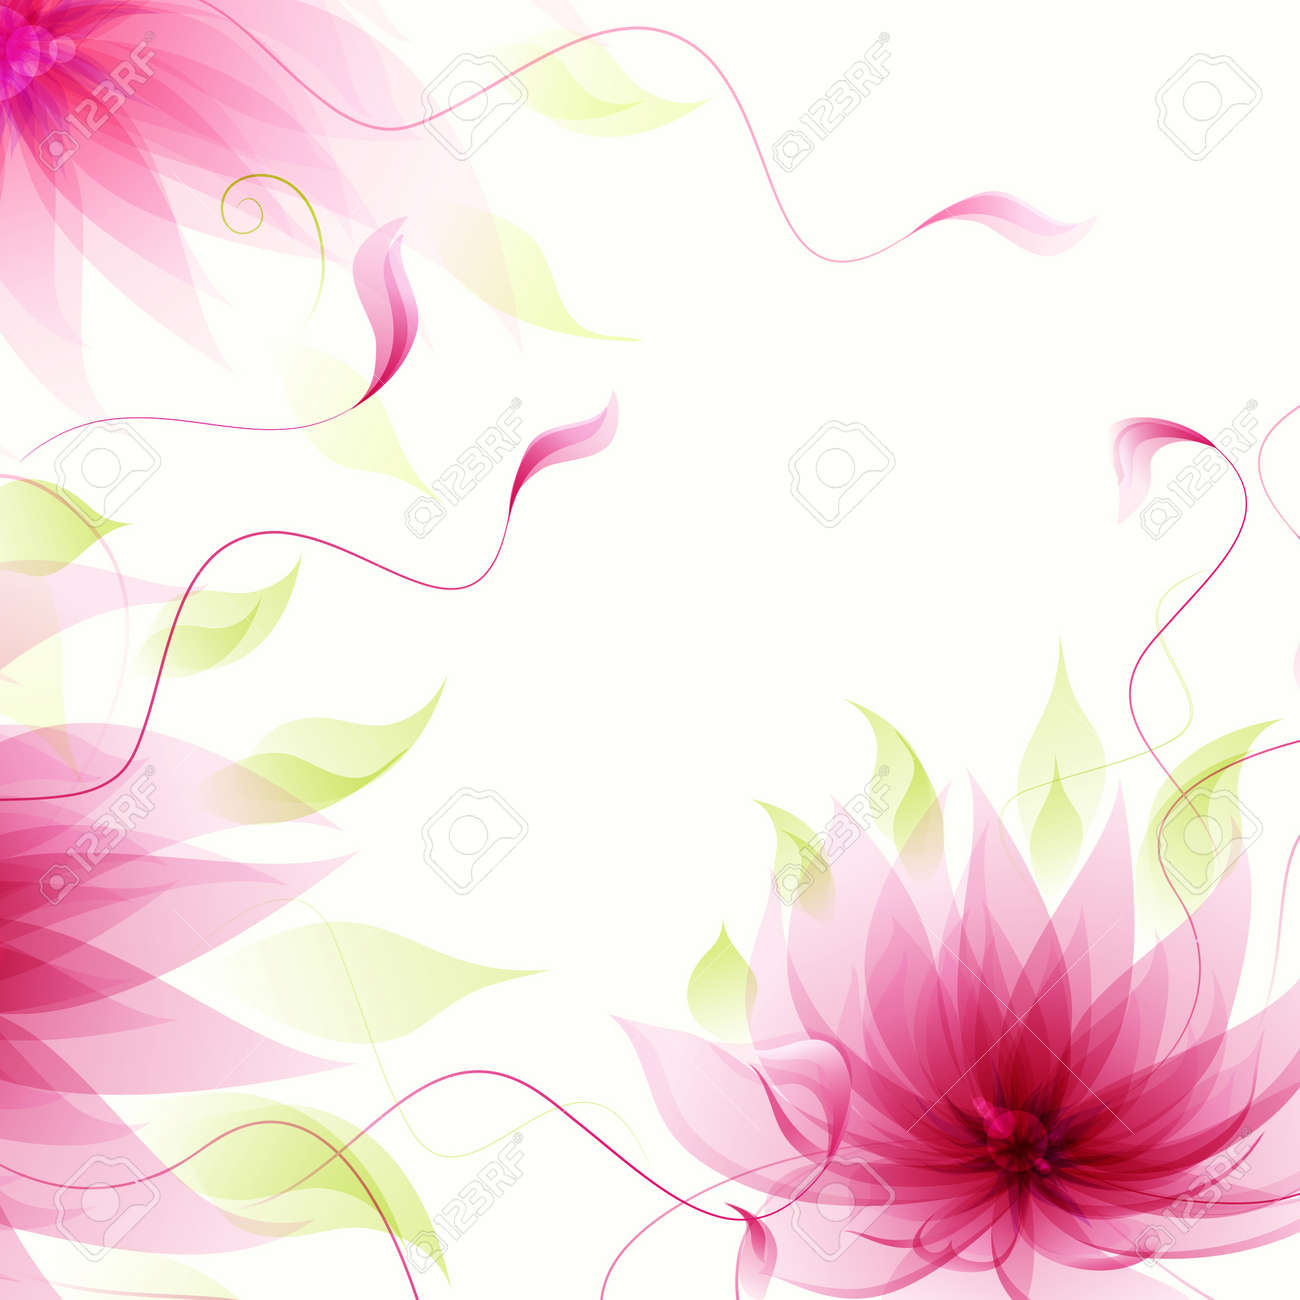 Yoga pattern background seamless pattern with five petals lotus flower - Lotus Flower Vector Abstract Background With Vector Pink Lotus Flower Illustration